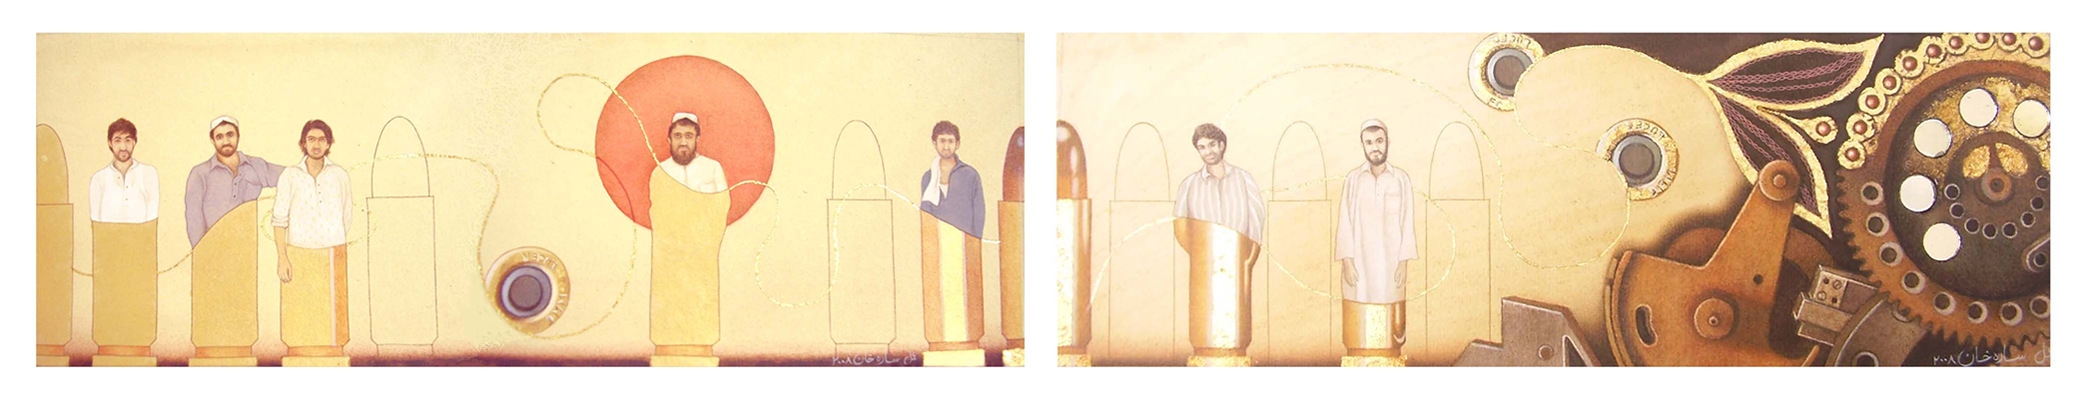 Kar-Khana (Diptych), 2008, Gouache, transparent watercolor and gold leaf on Wasli, 3.5 x 12 inches (each painting size)